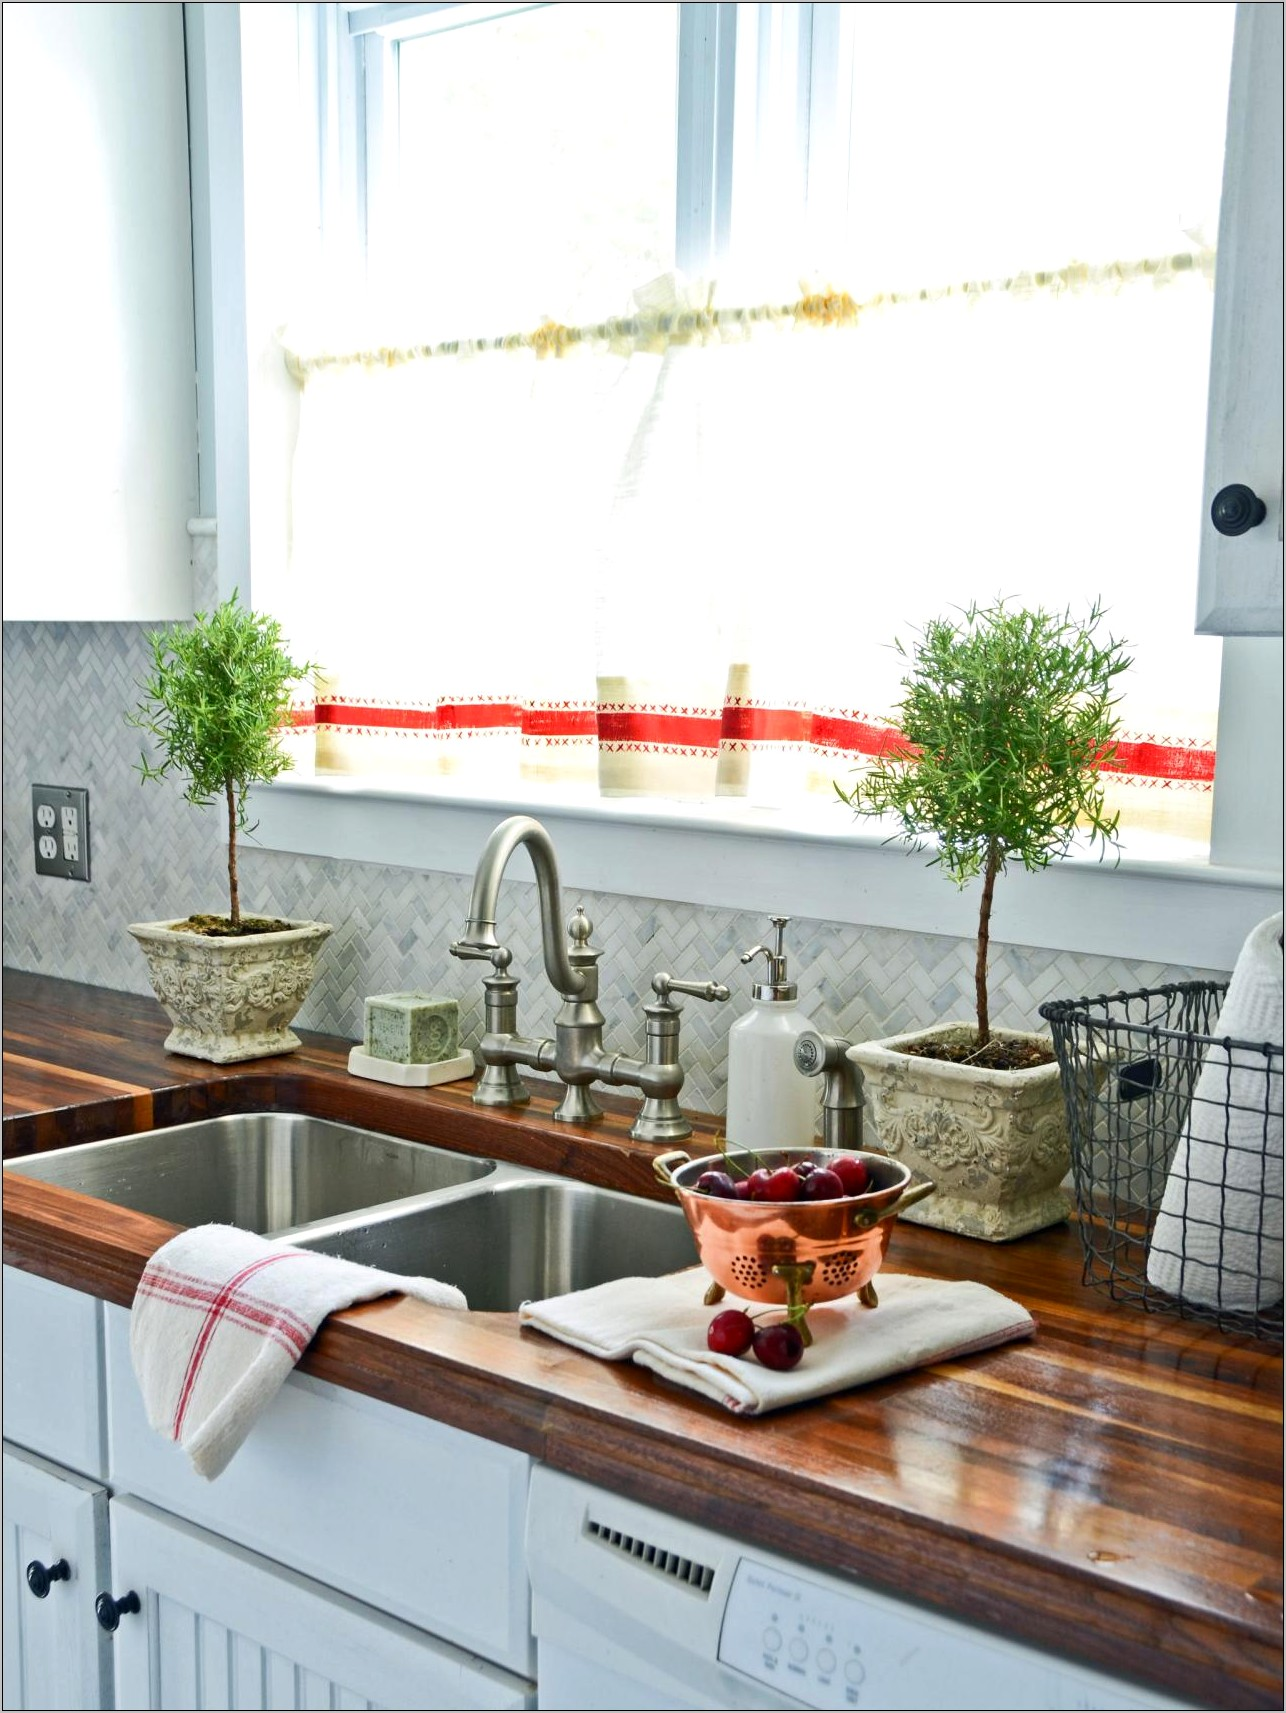 Elegant Kitchen Countertop Decorating Ideas With Plants